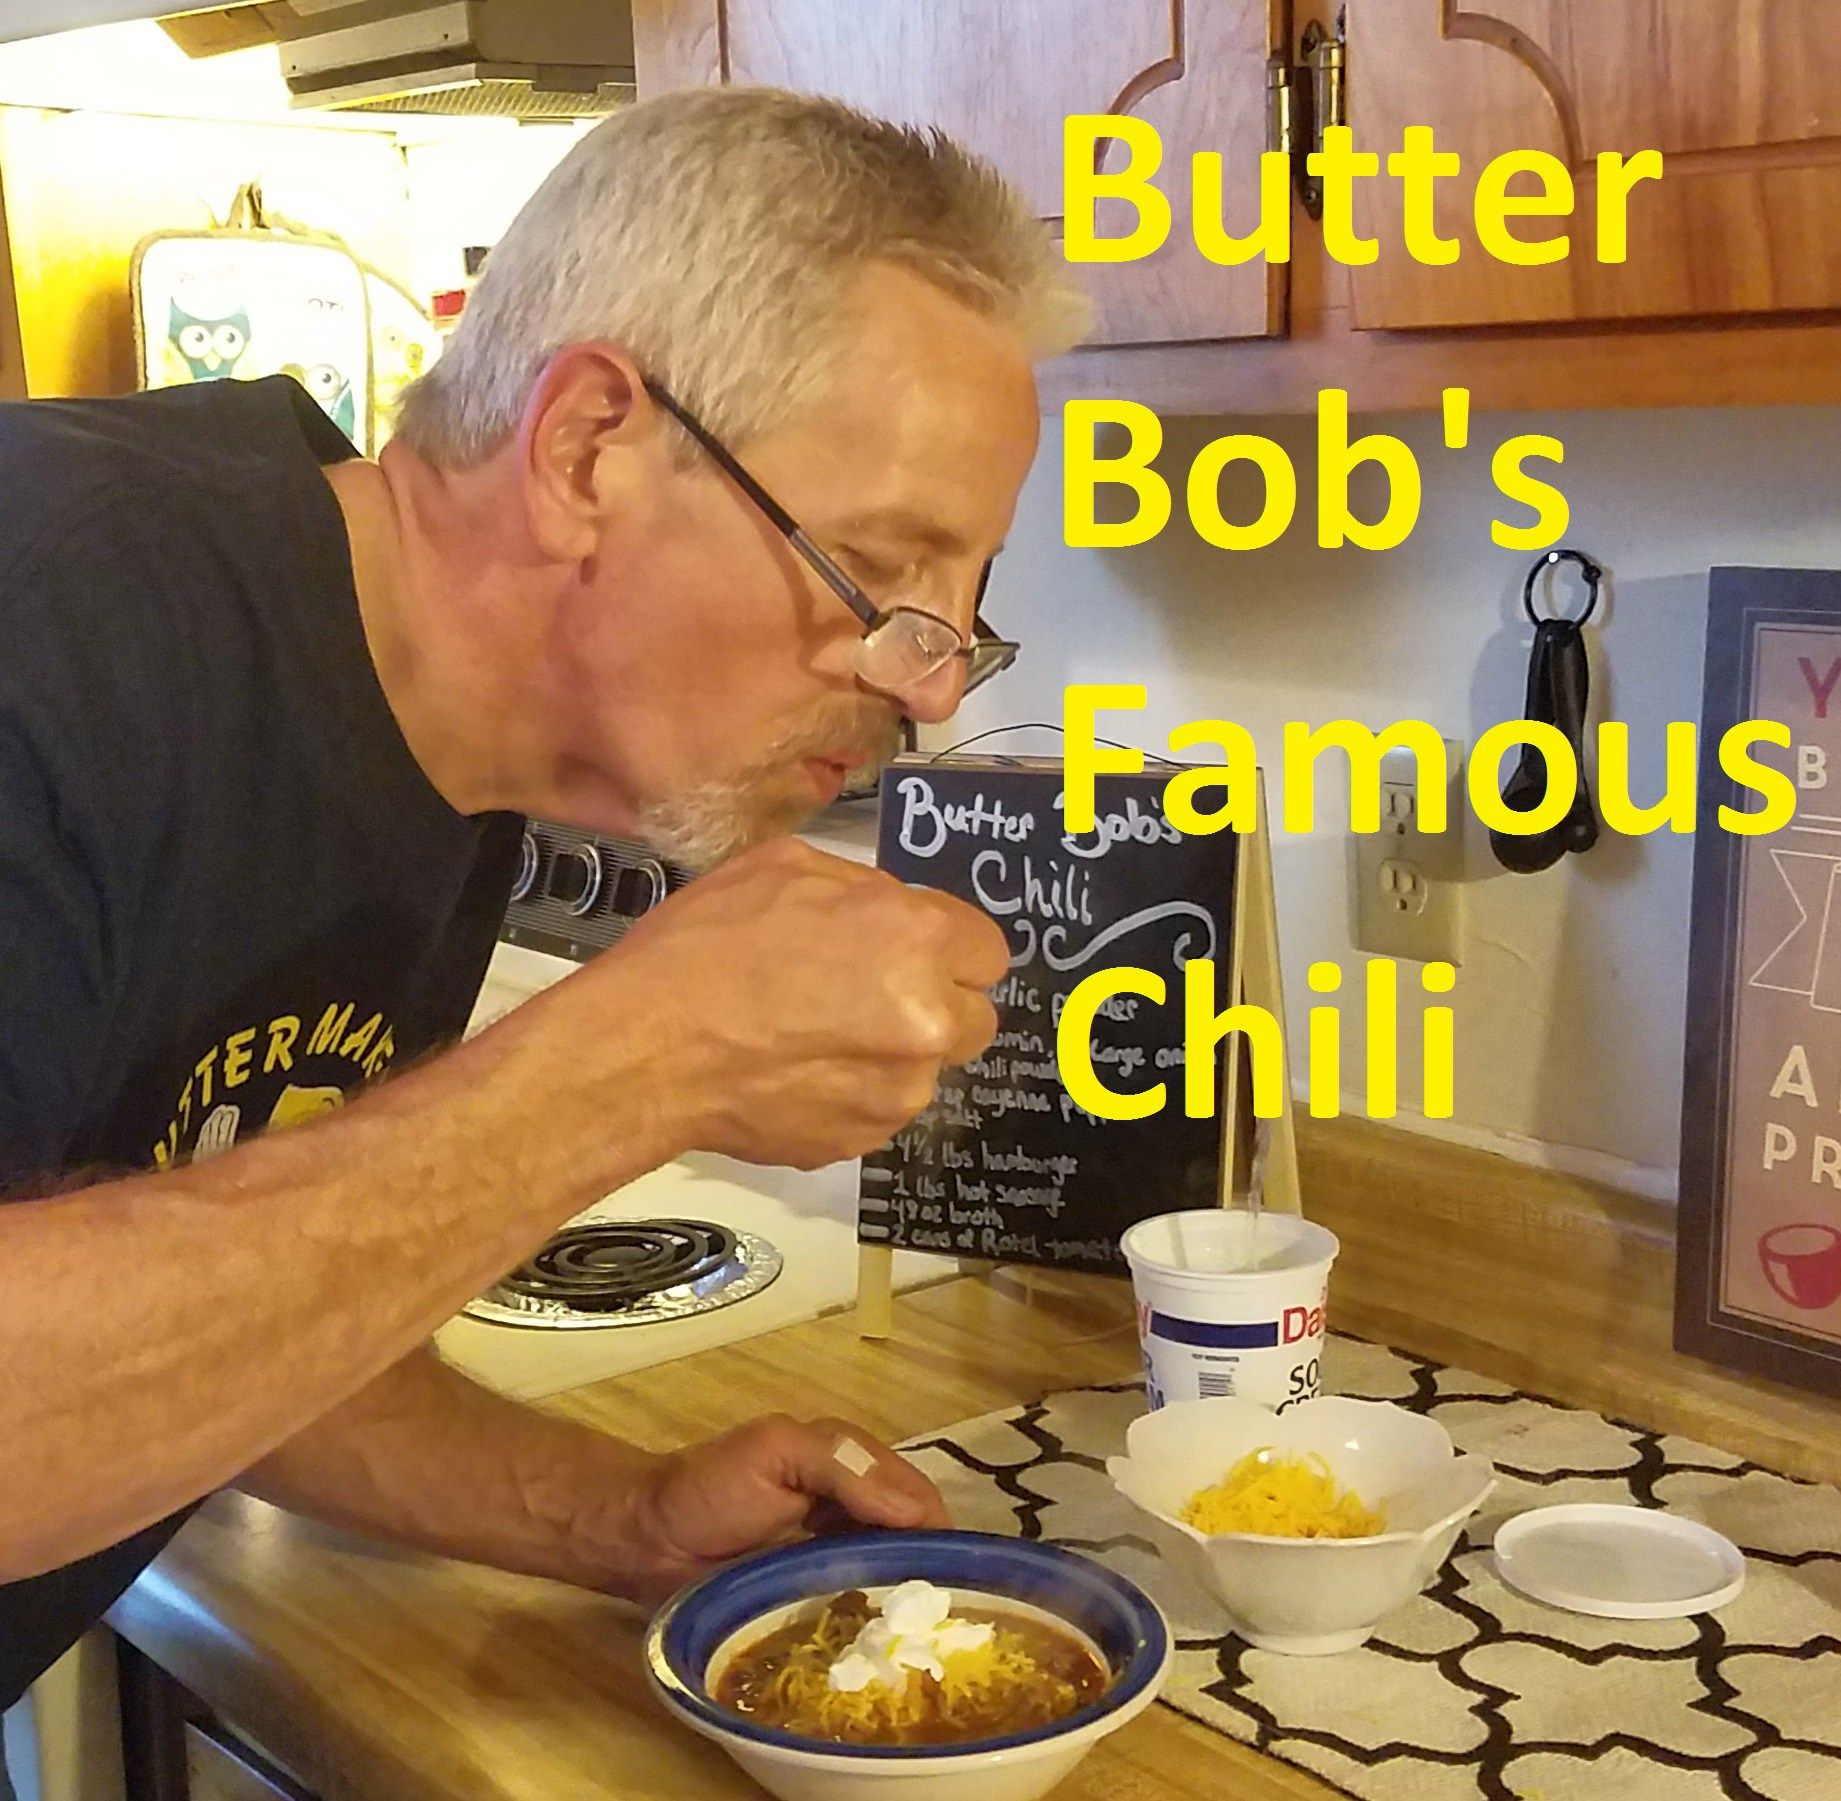 what diet does butter bob use?